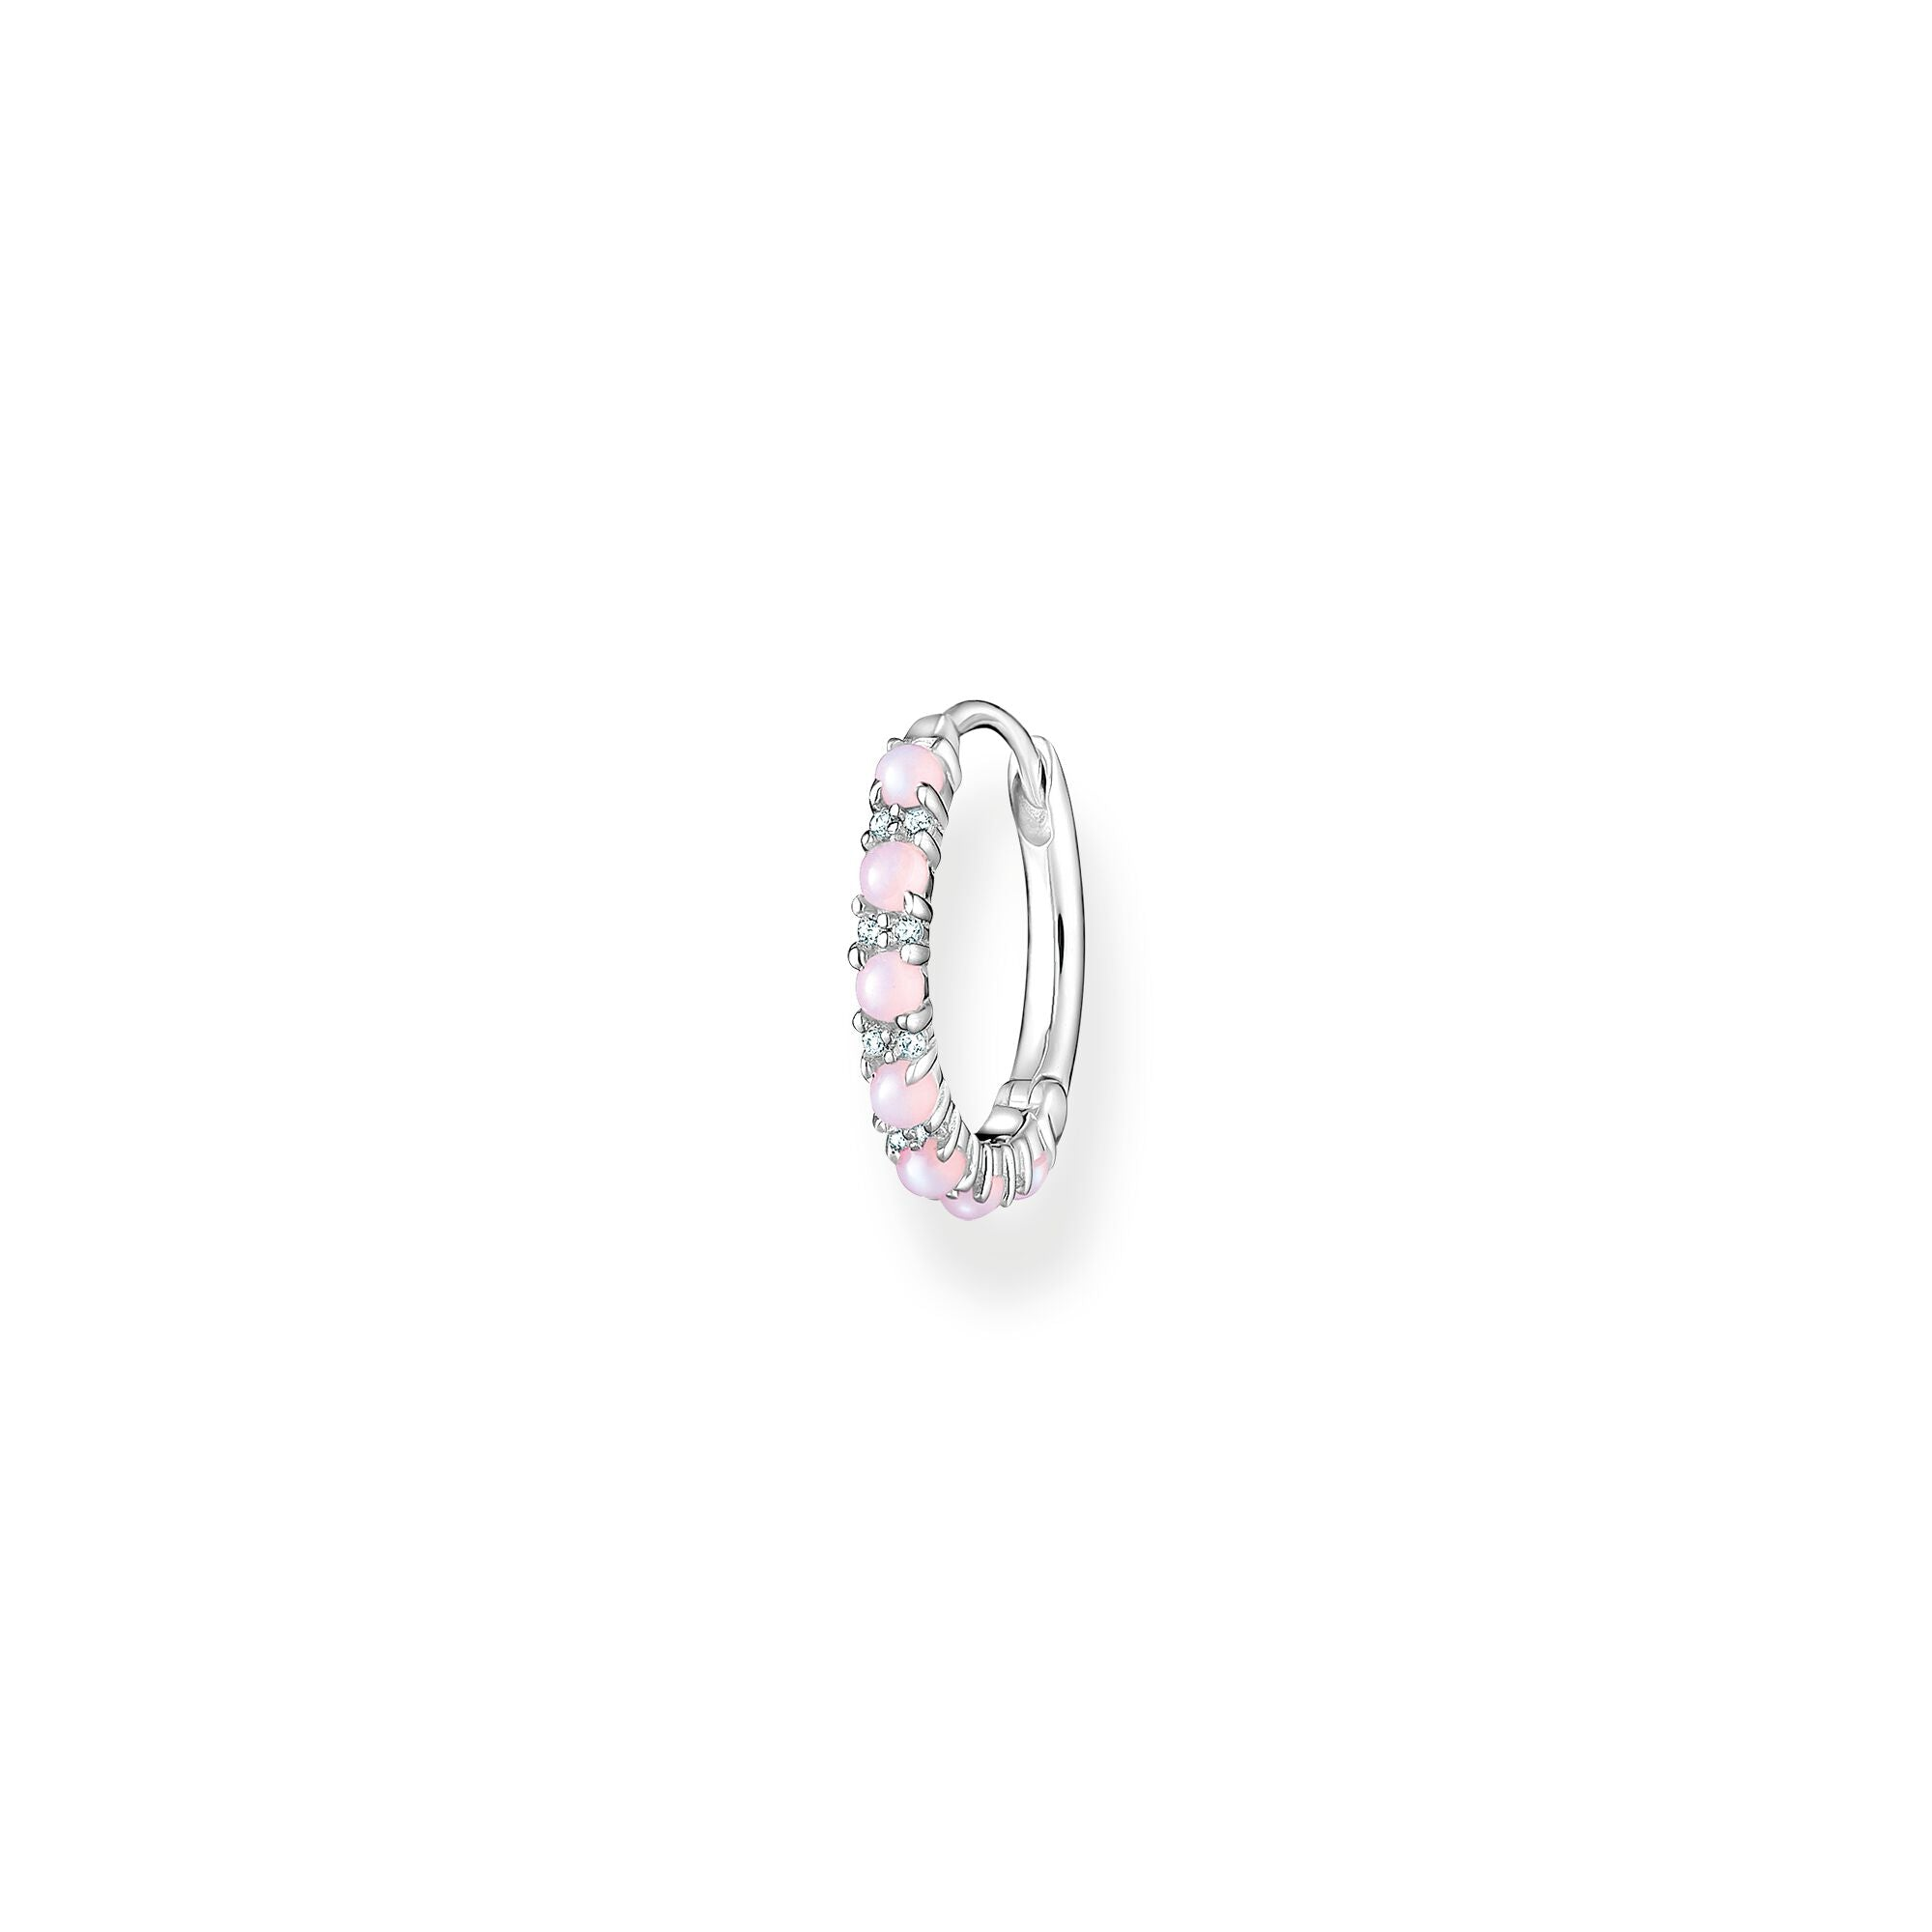 Thomas Sabo sterling silver and pink opal effect stones, single hoop earring